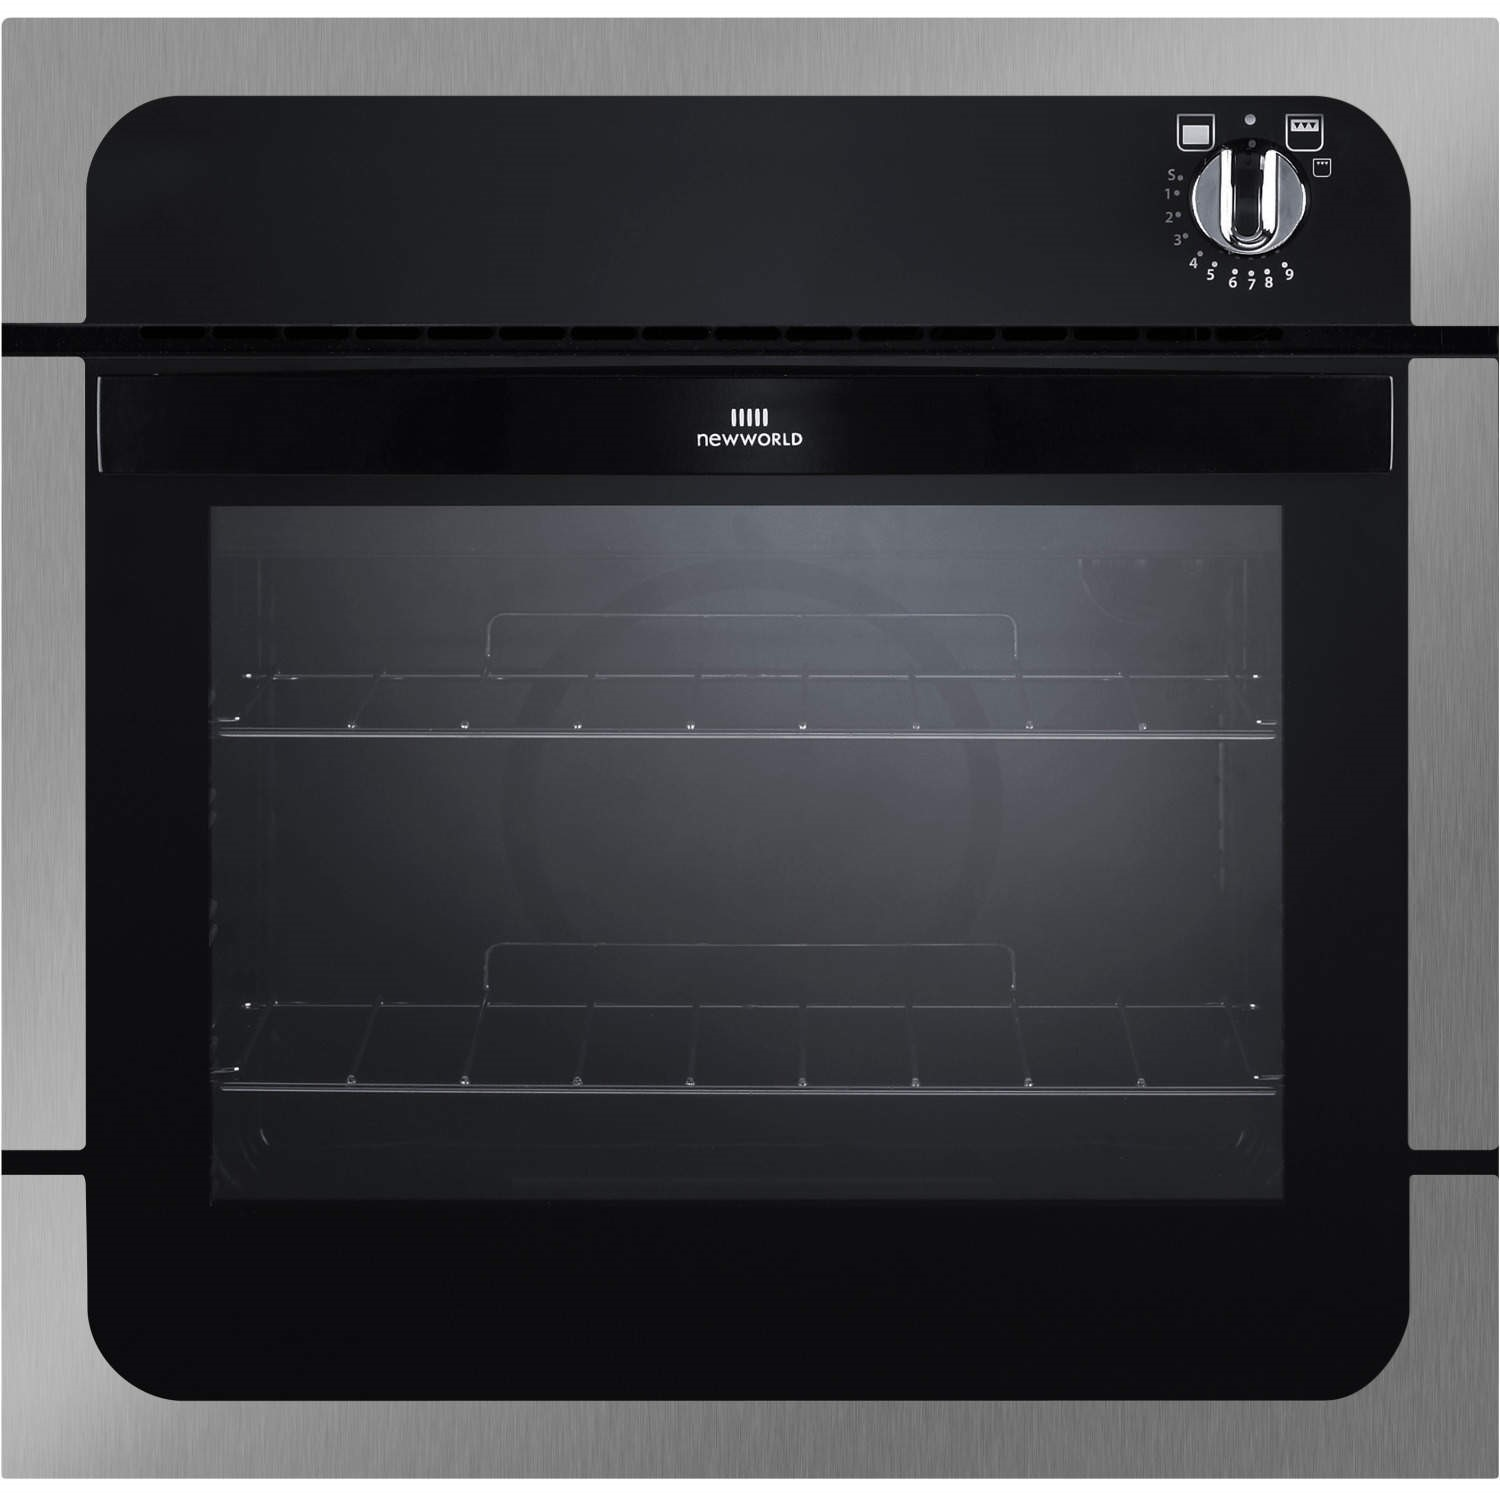 new world nw601g gas built in single oven stainless steel 444441475 rh appliancesdirect co uk